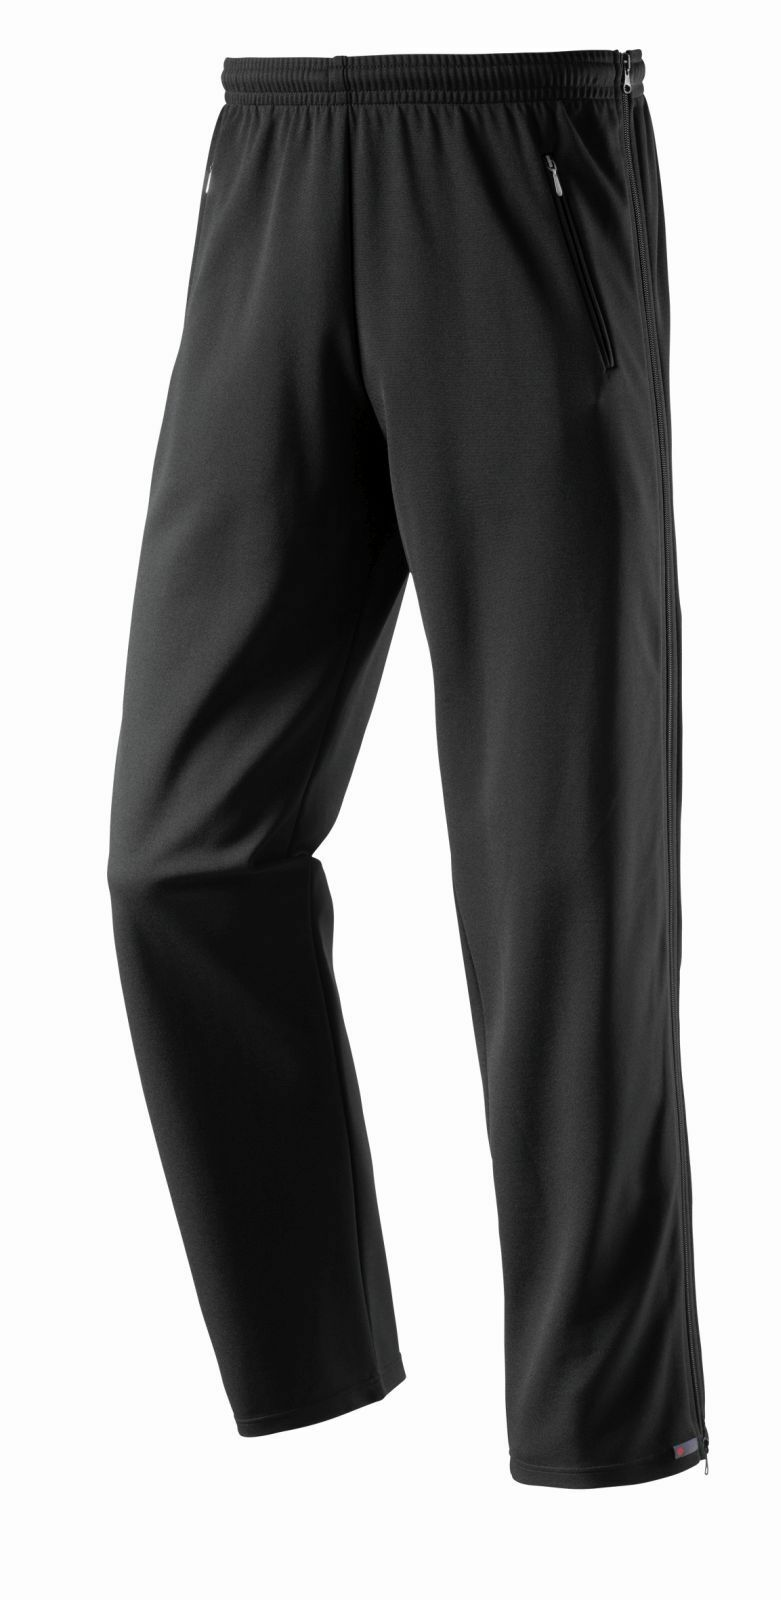 Schneider  Sportswear Men's Trousers Pants bergenm through continuous zip  order now enjoy big discount